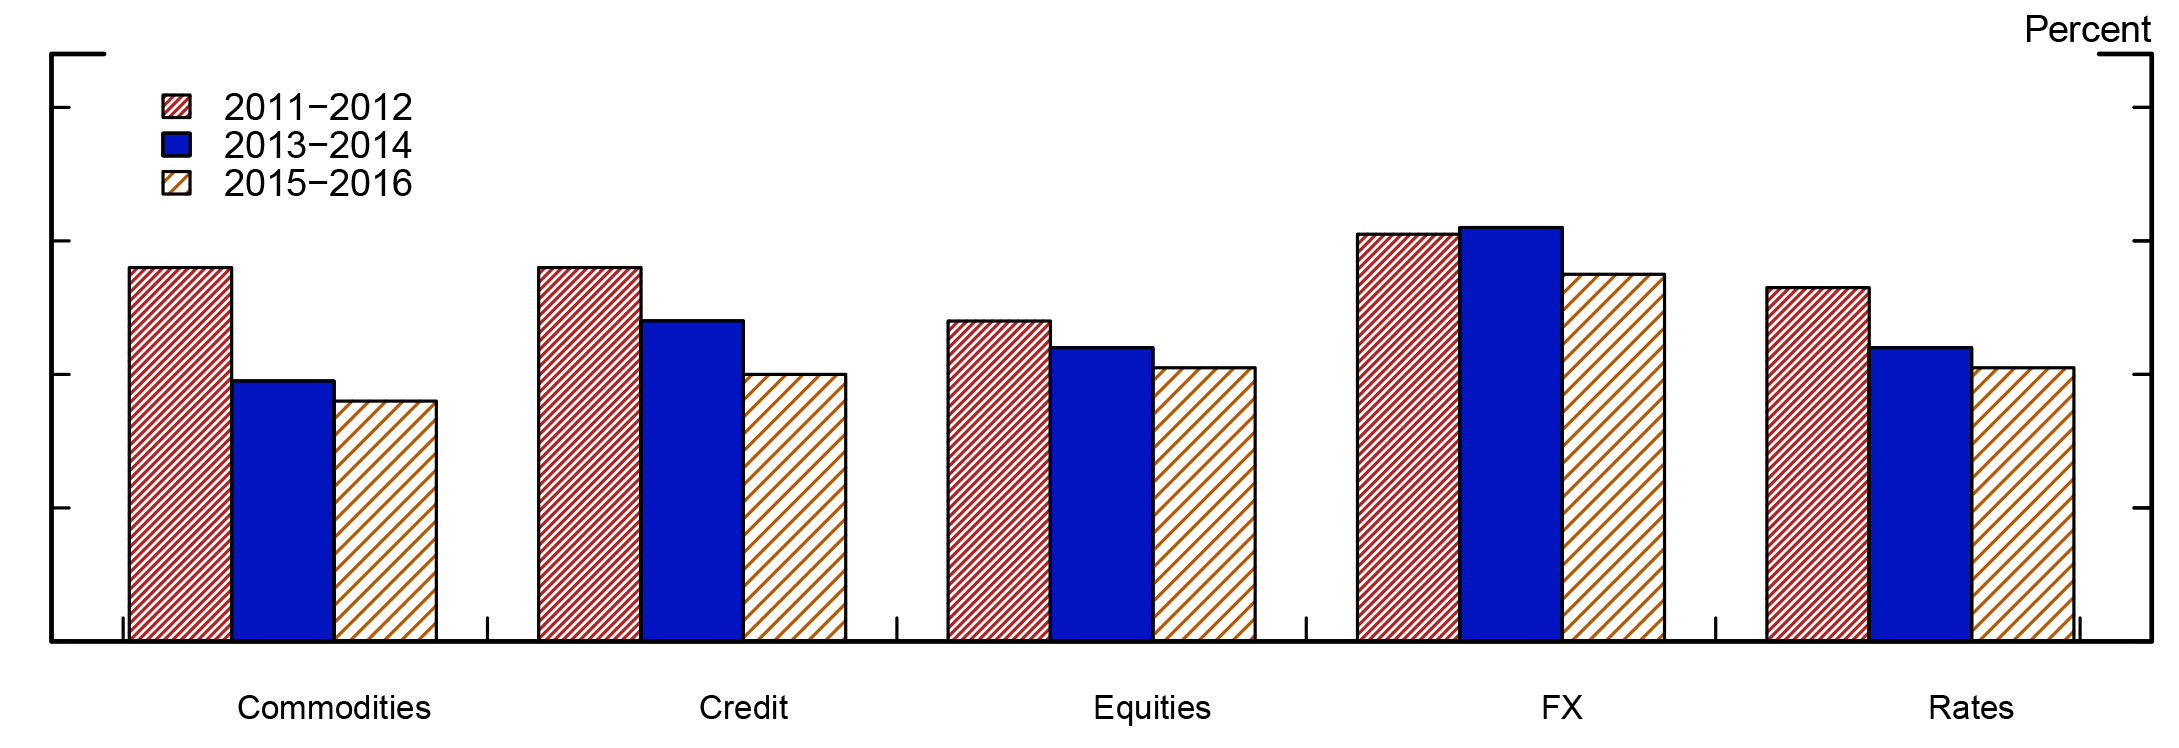 Figure 2: Percentage of total variance explained by the first two principal components